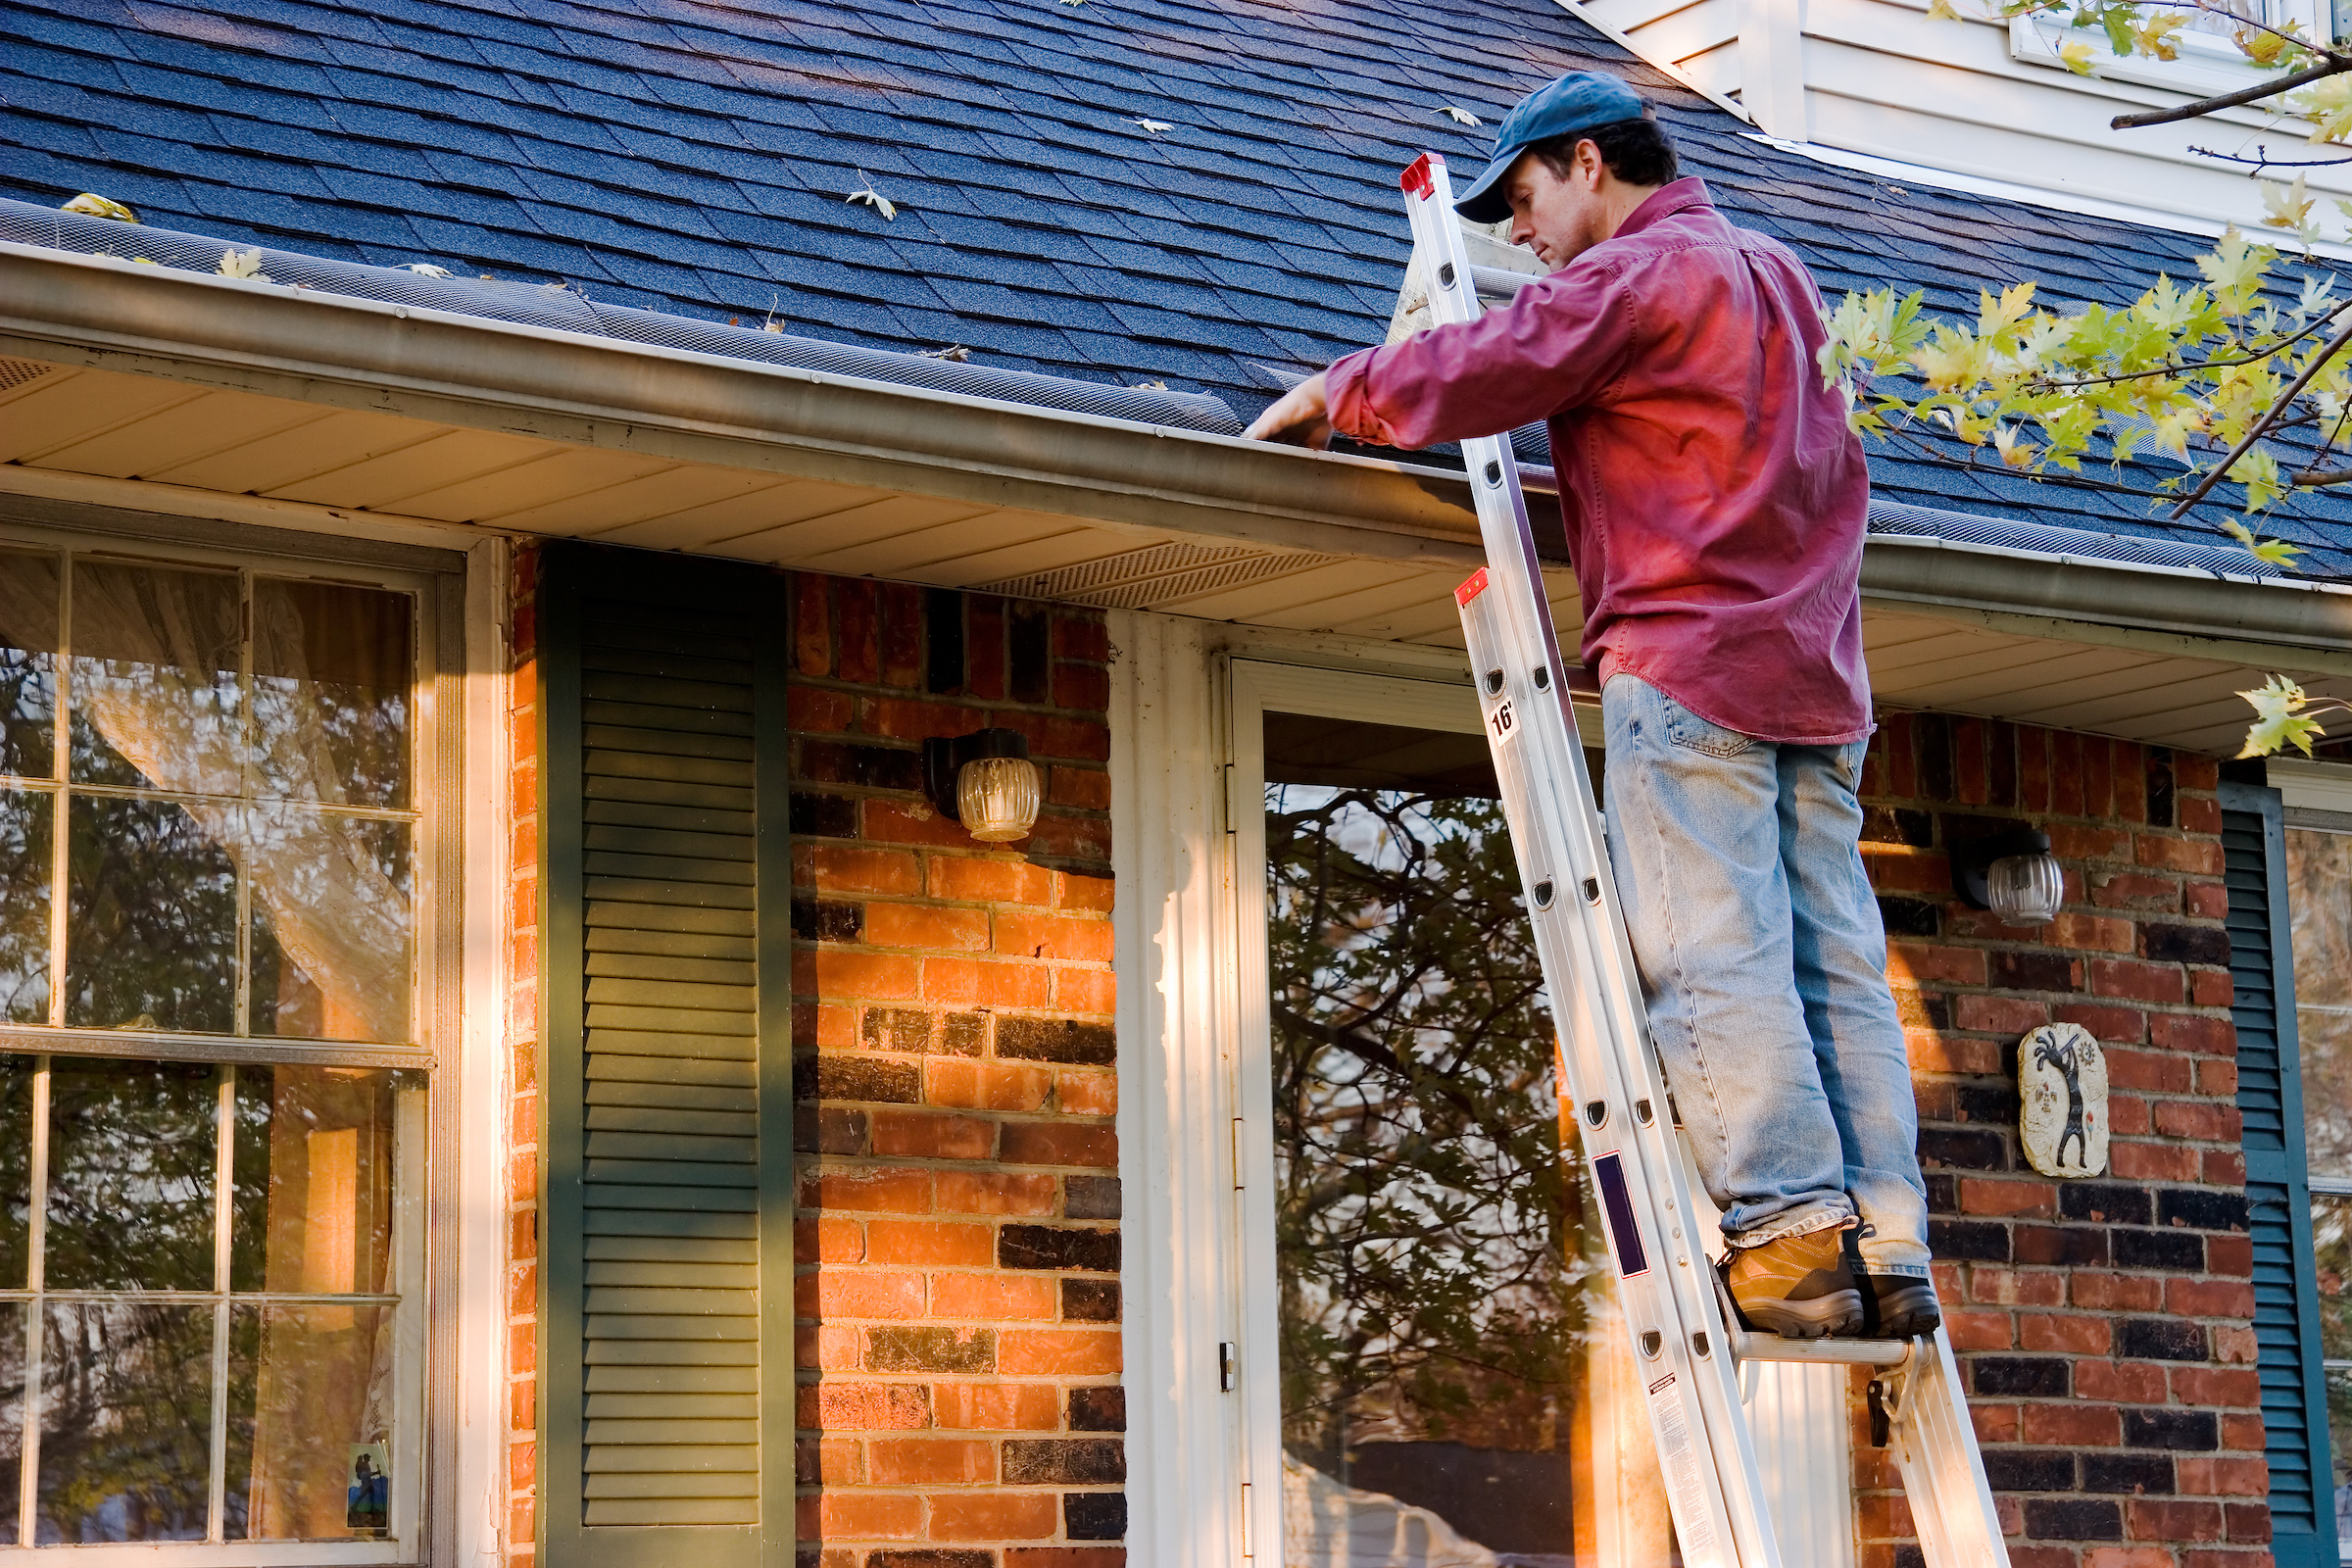 Gutter cleaning near me: how to find a reliable company through an online search